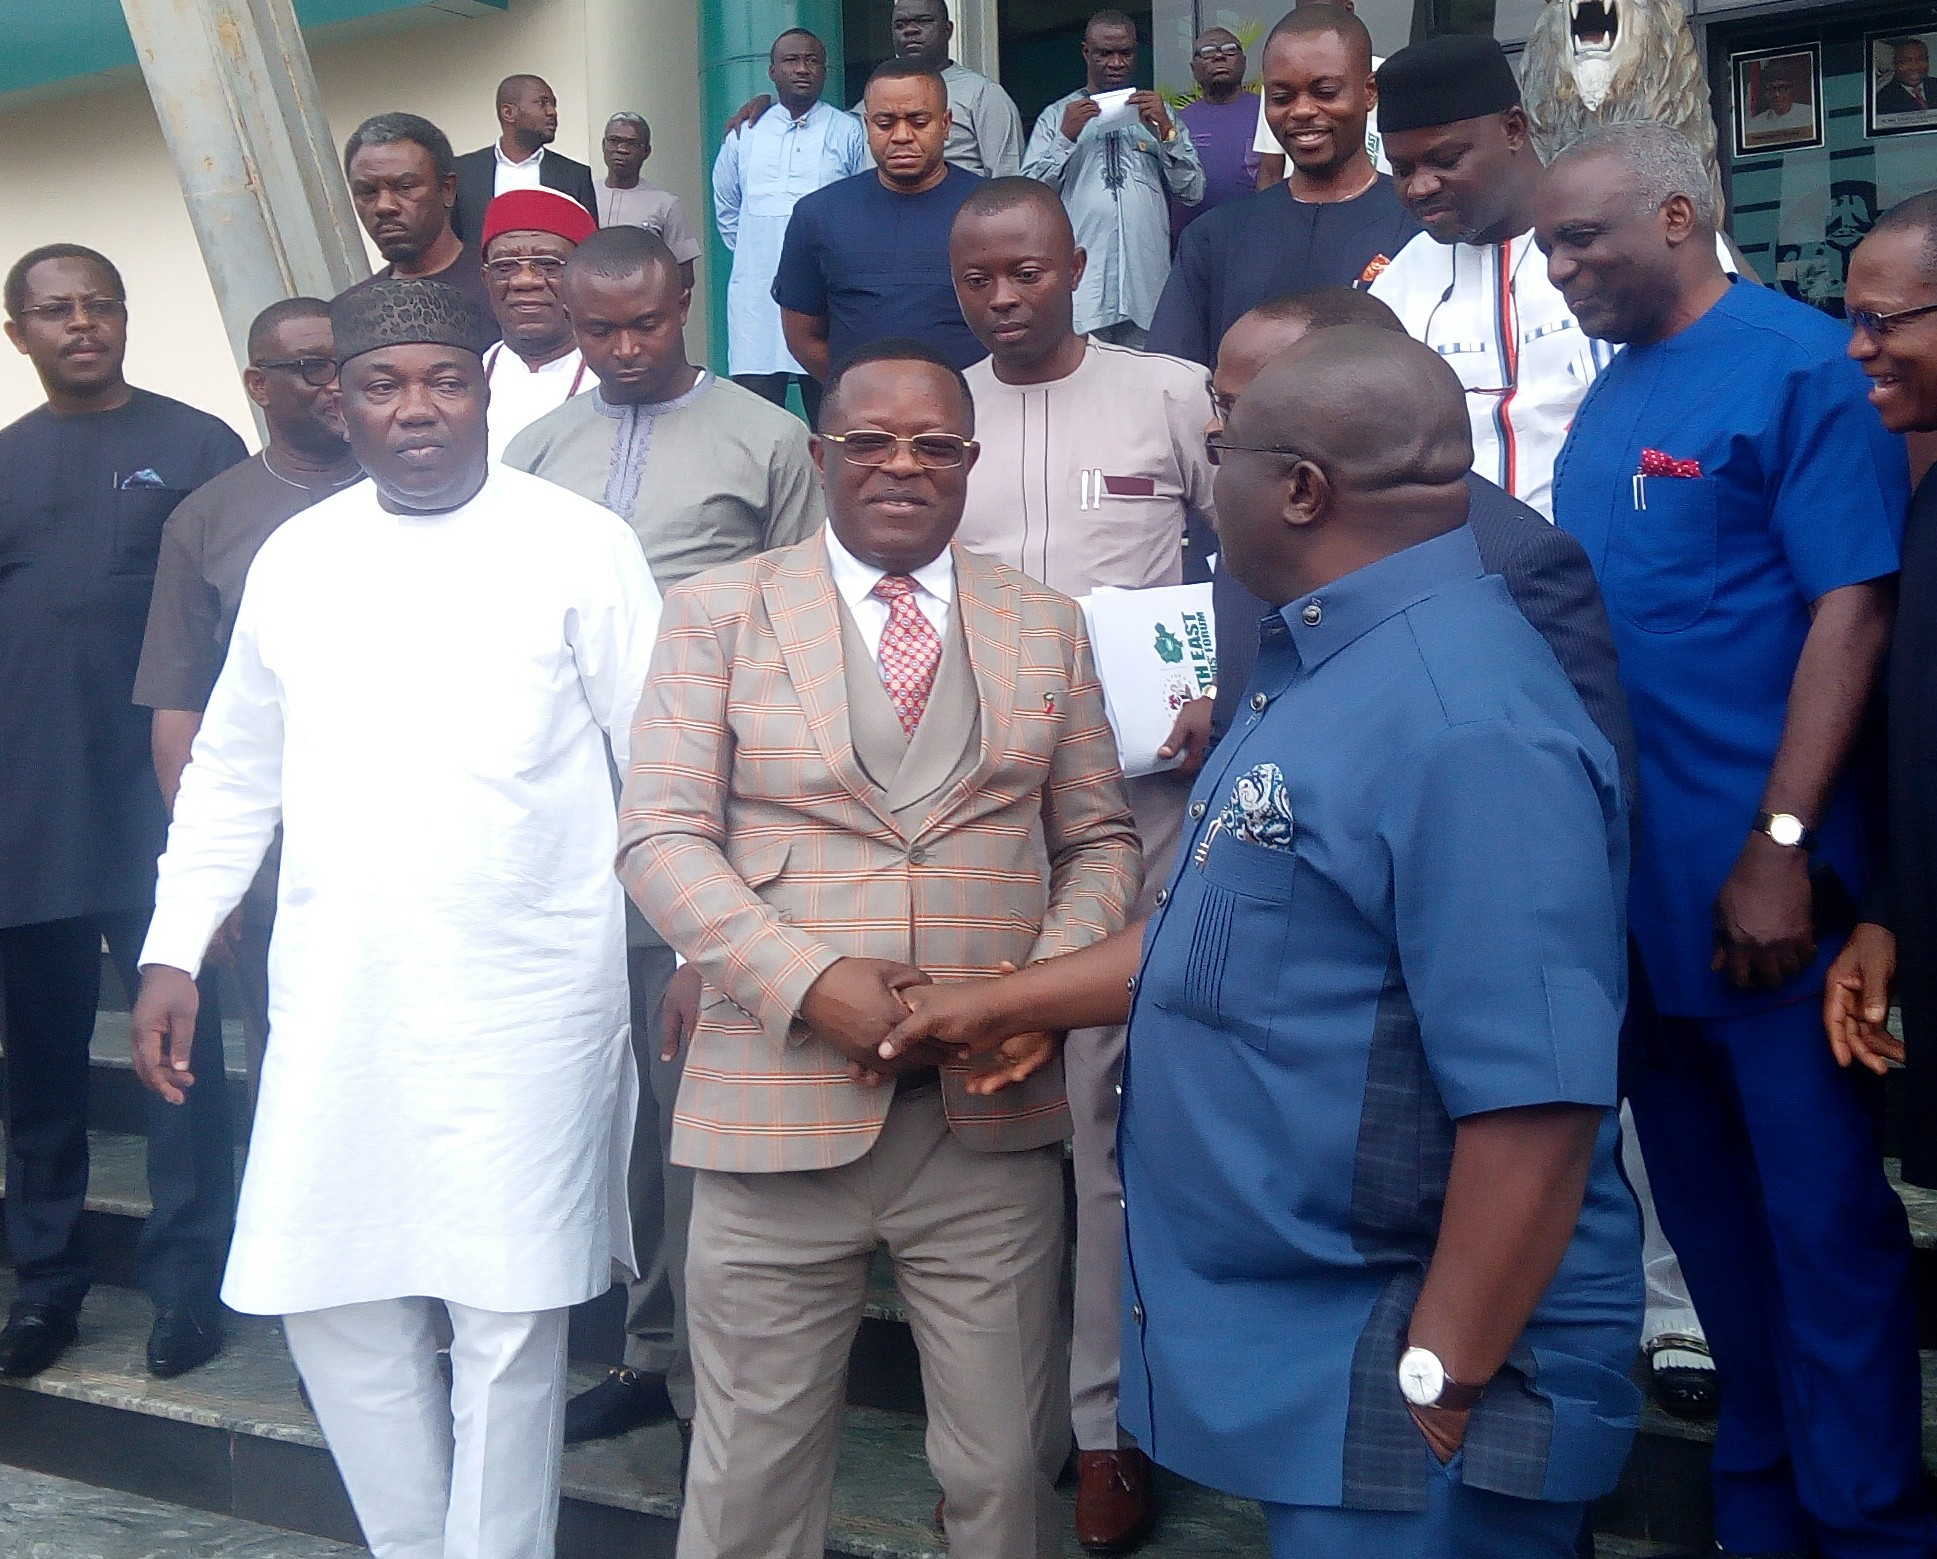 Governors Ifeanyi Ugwuanyi, Dave Umahi and Okezie Ikpeazu after the meeting